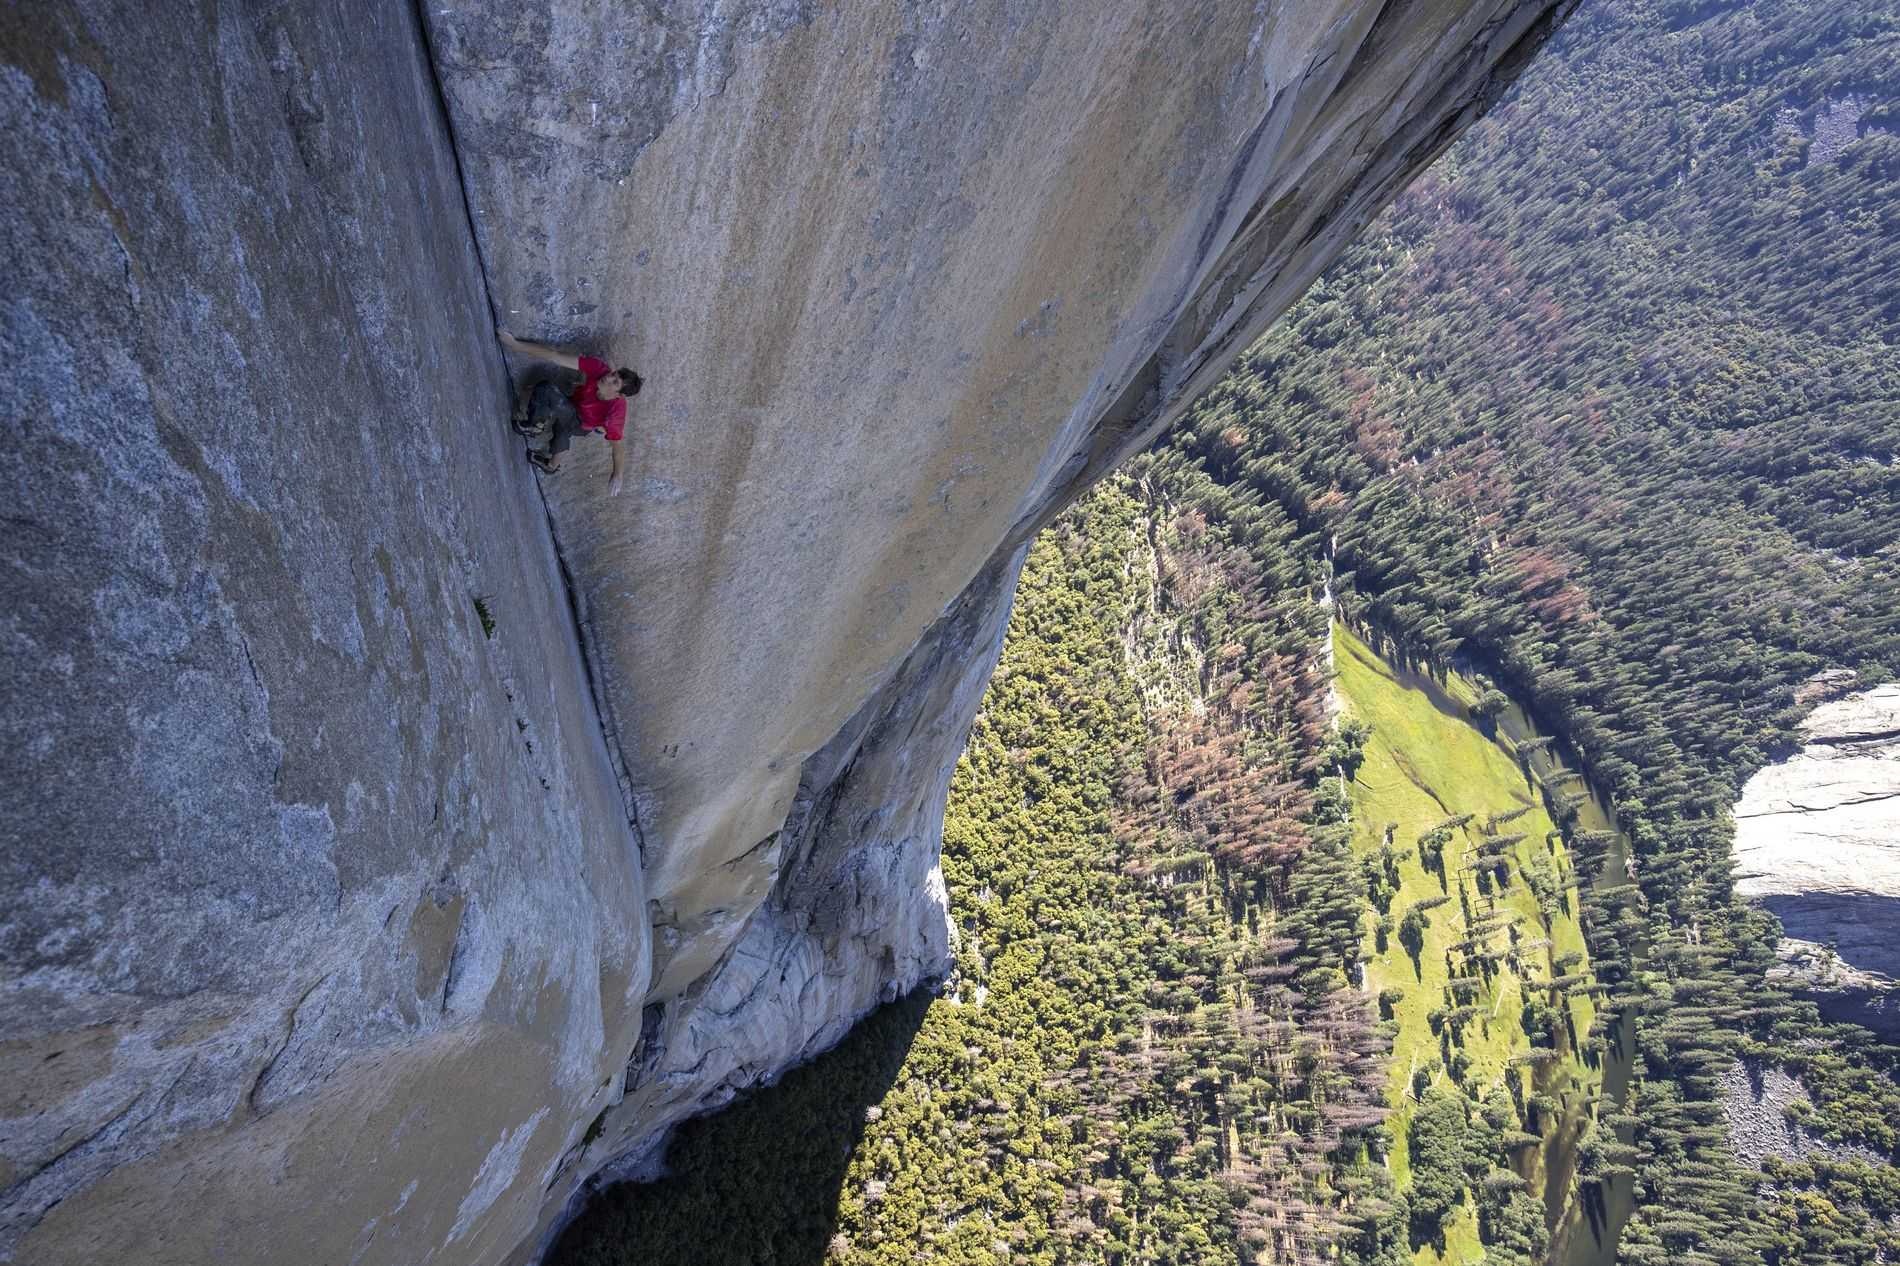 Without ropes, bolts or protection, Alex Honnold is at the mercy of his own ability. One false move would be fatal. Here he climbs through the enduro corner on El Capitan's Freerider.